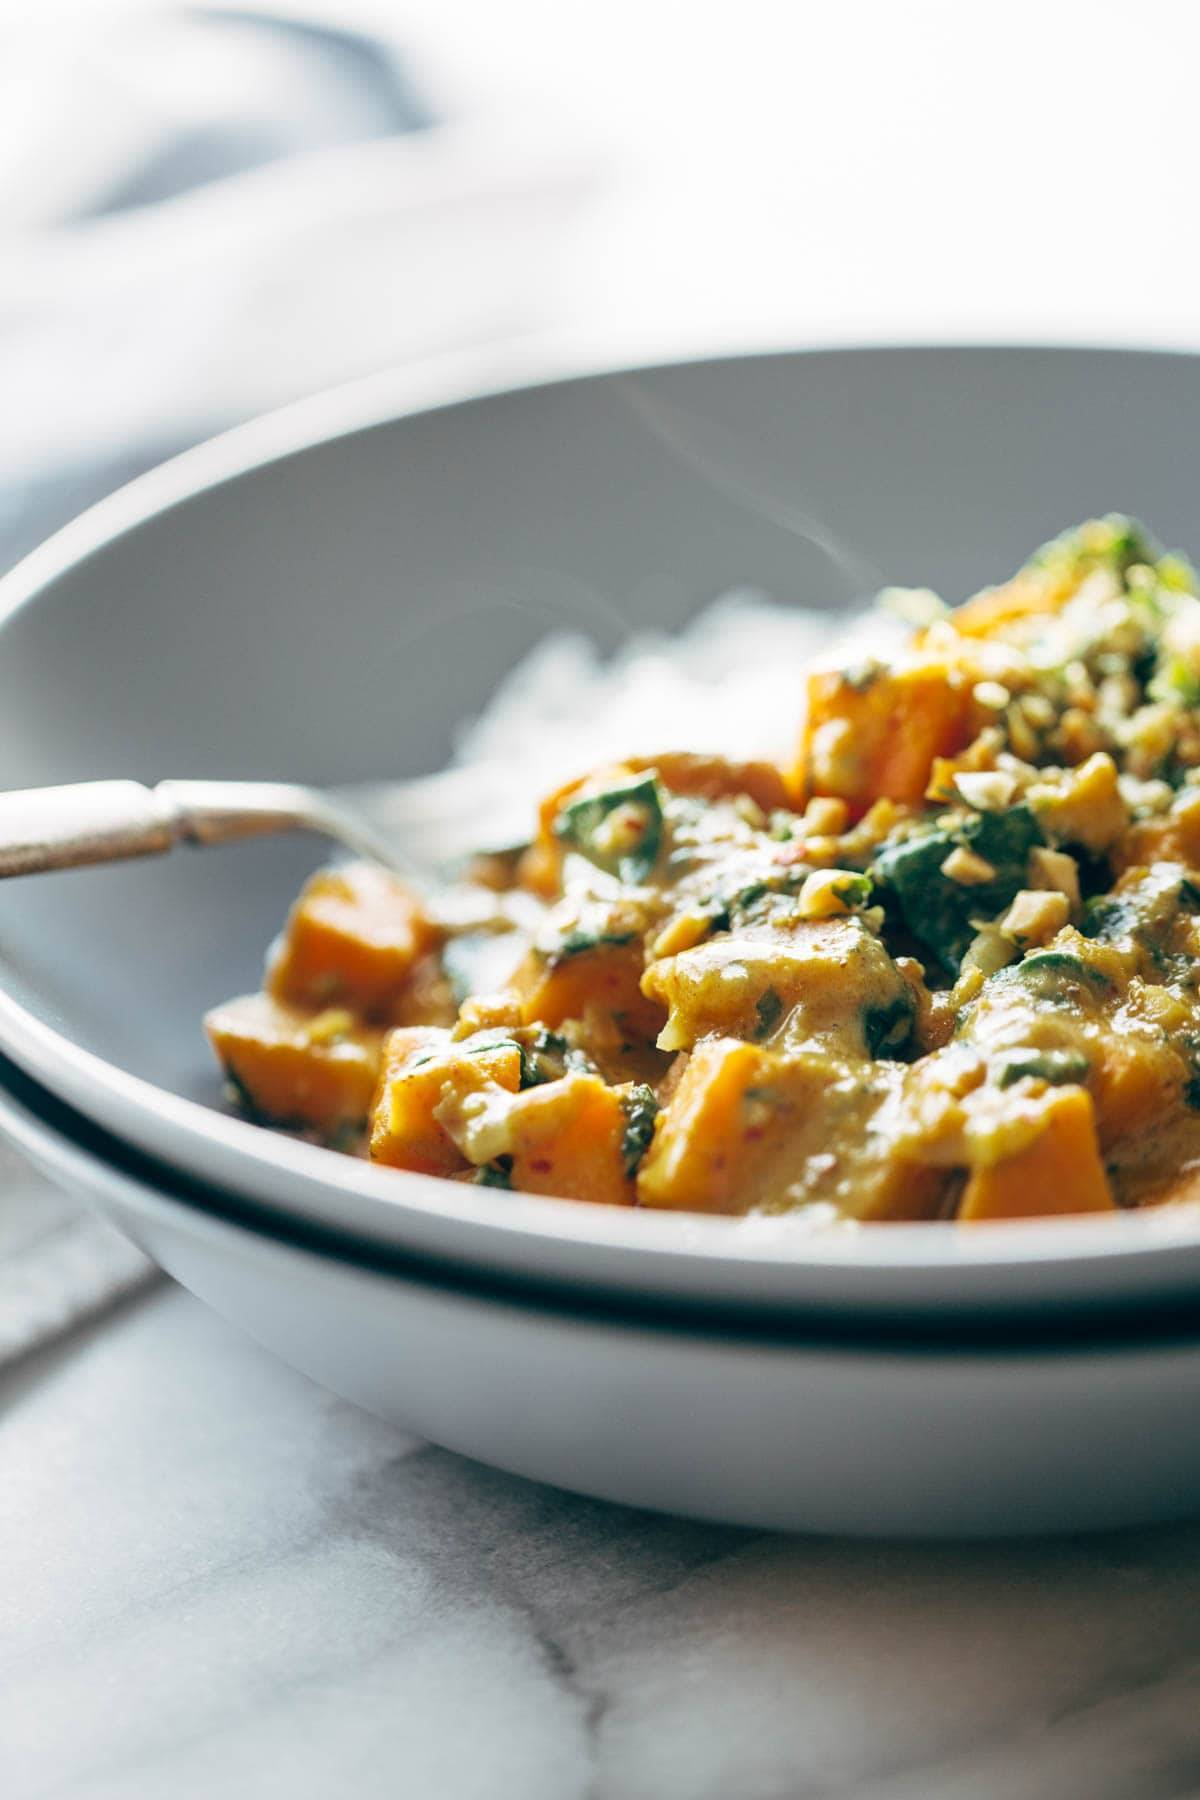 Creamy Thai Sweet Potato Curry in two bowls.